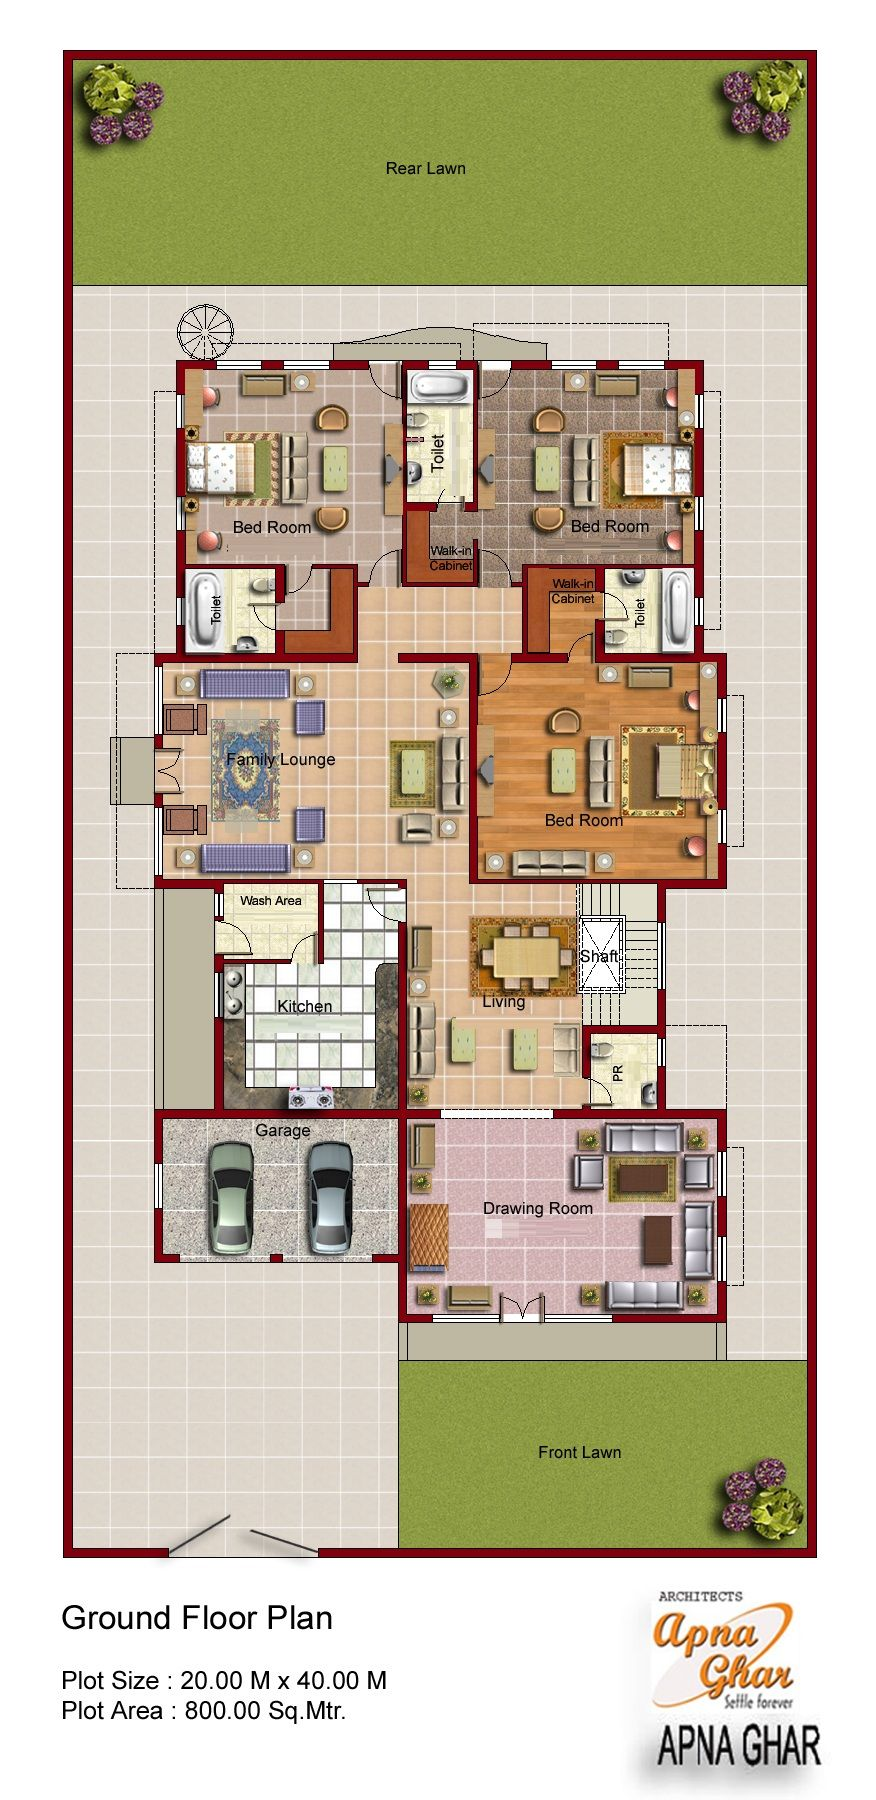 2d floor plan for modern duplex 2 floor house area 800 for Modern house 2 floor